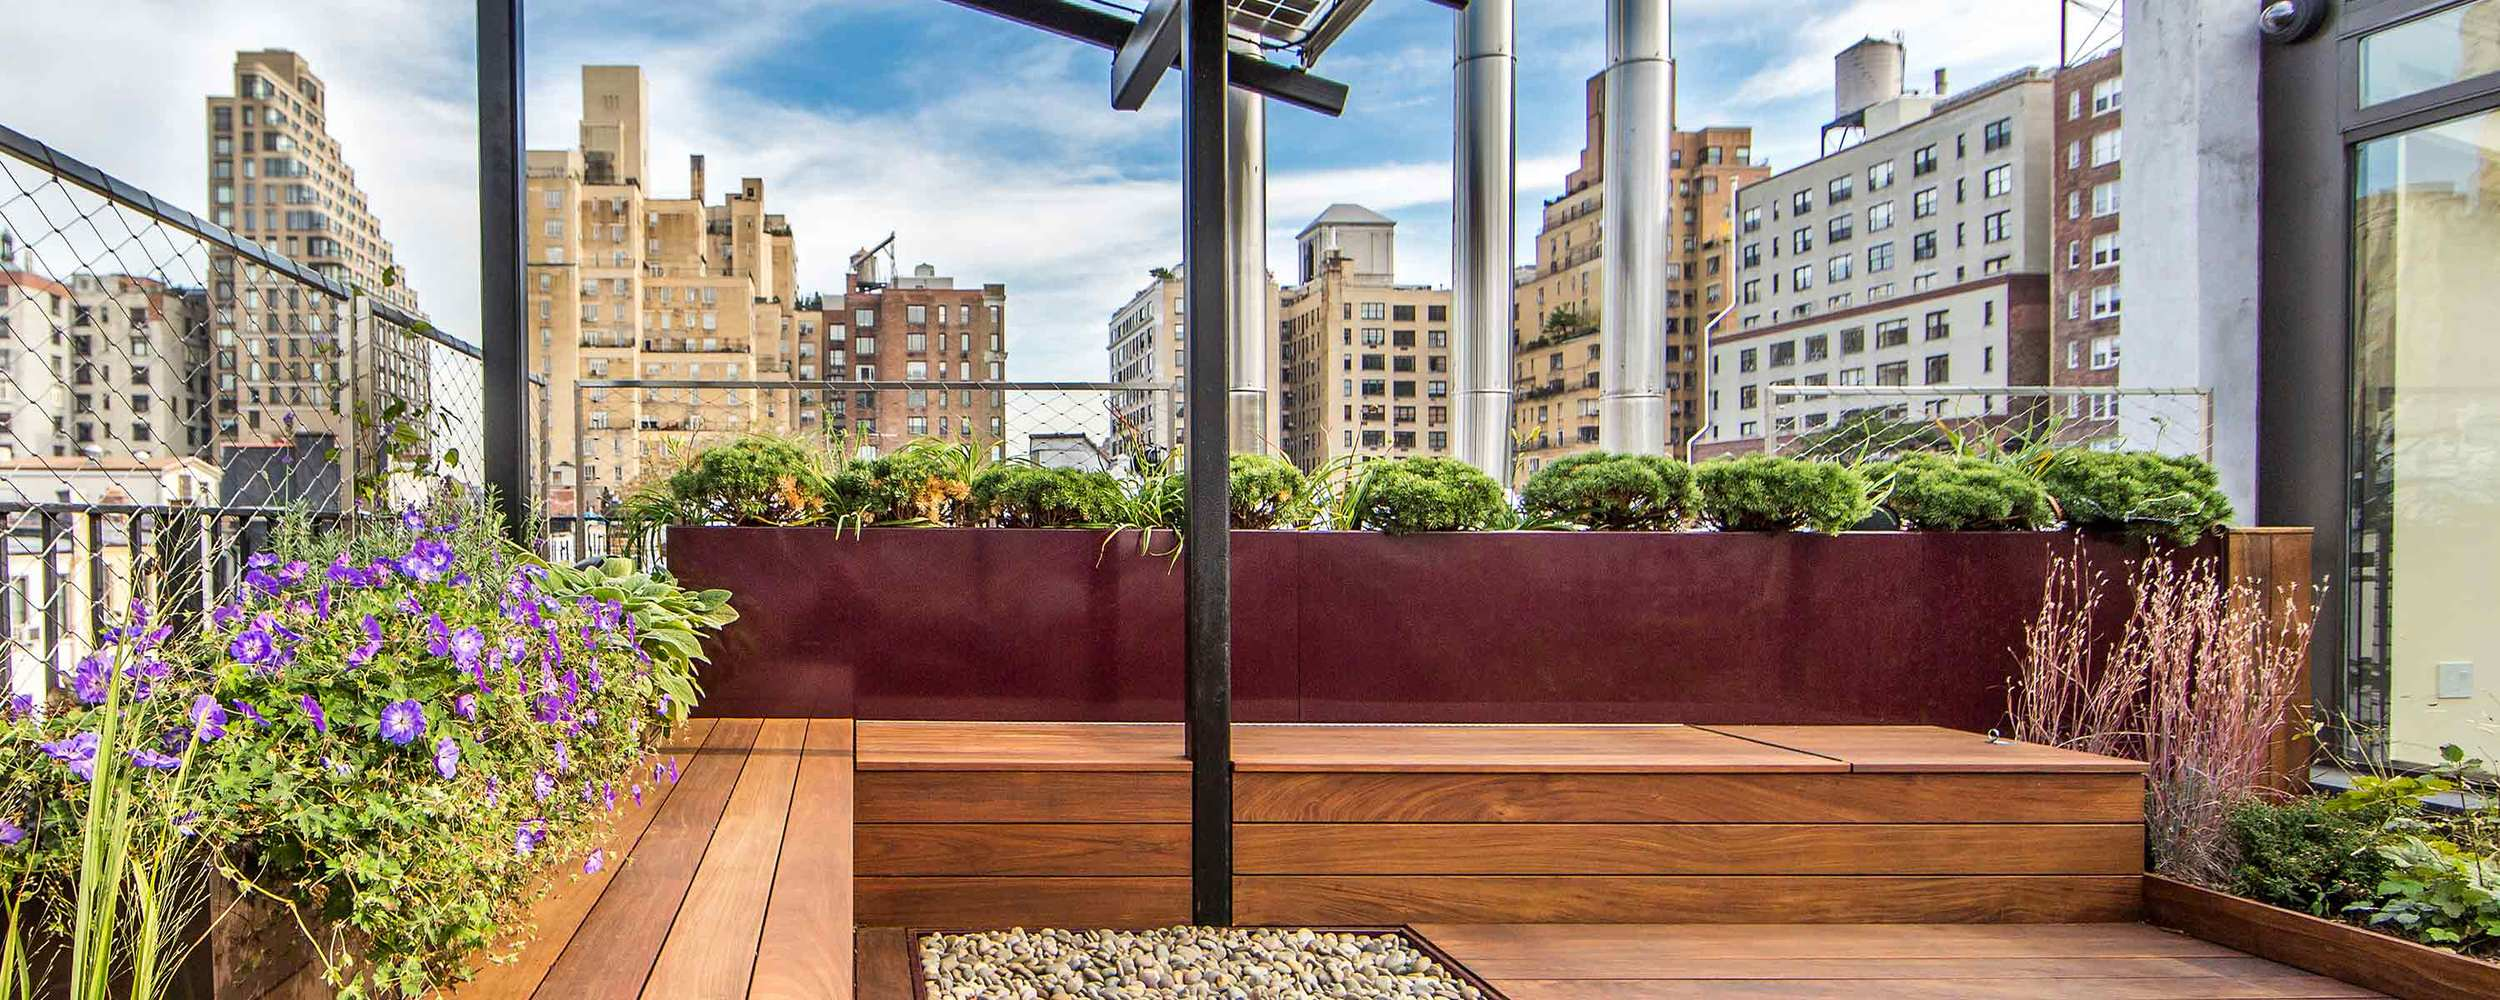 Upper West Side Terrace Nina Kramer The Standard Planter Powder Coated Aluminum